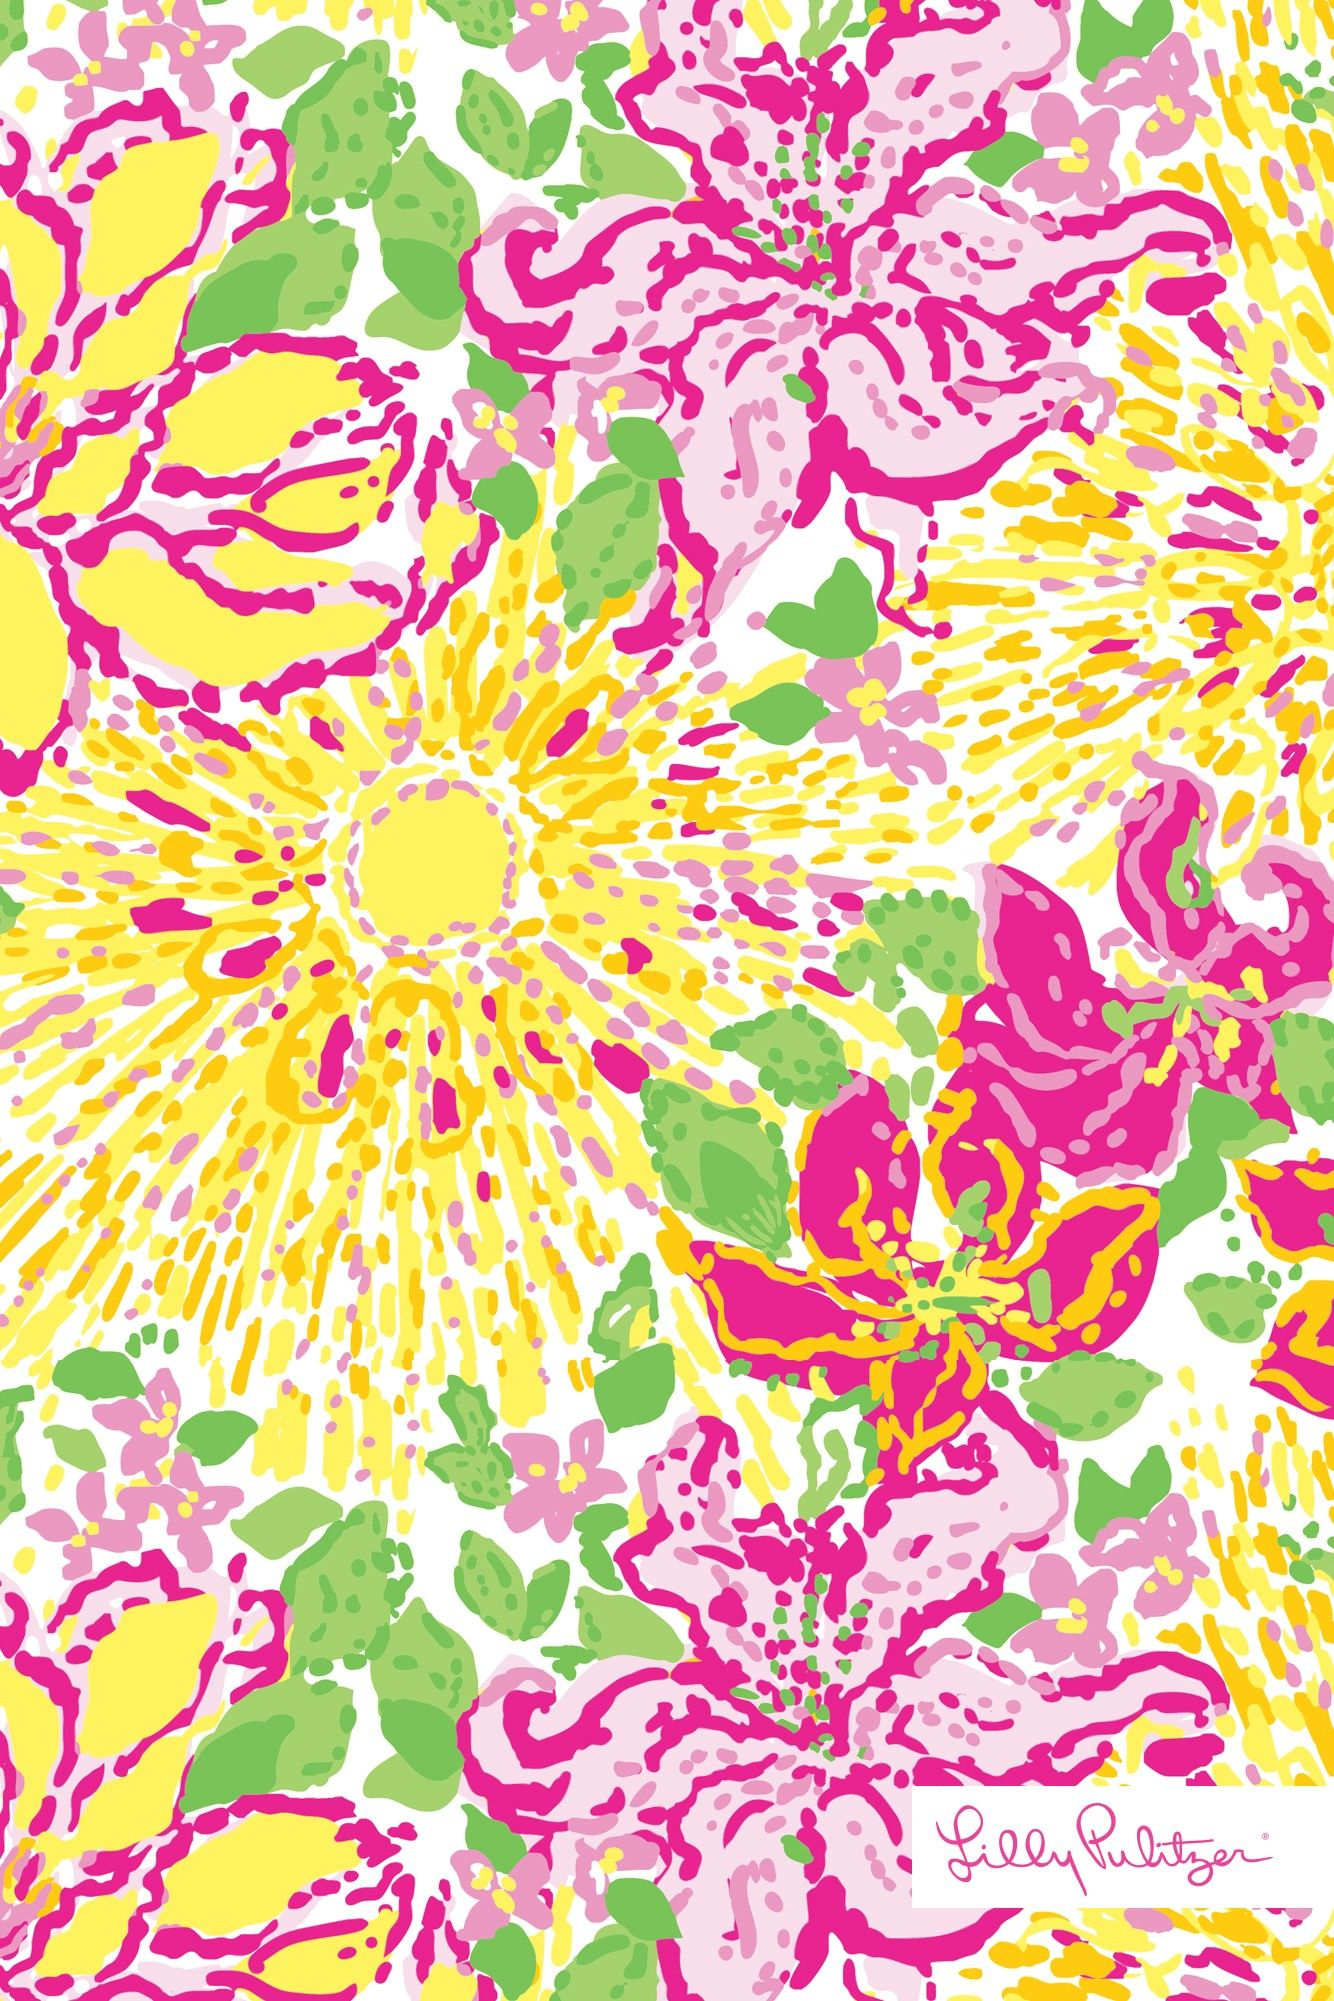 Lilly Pulitzer A Story Written in the Sun wallpaper   Patterns We ...